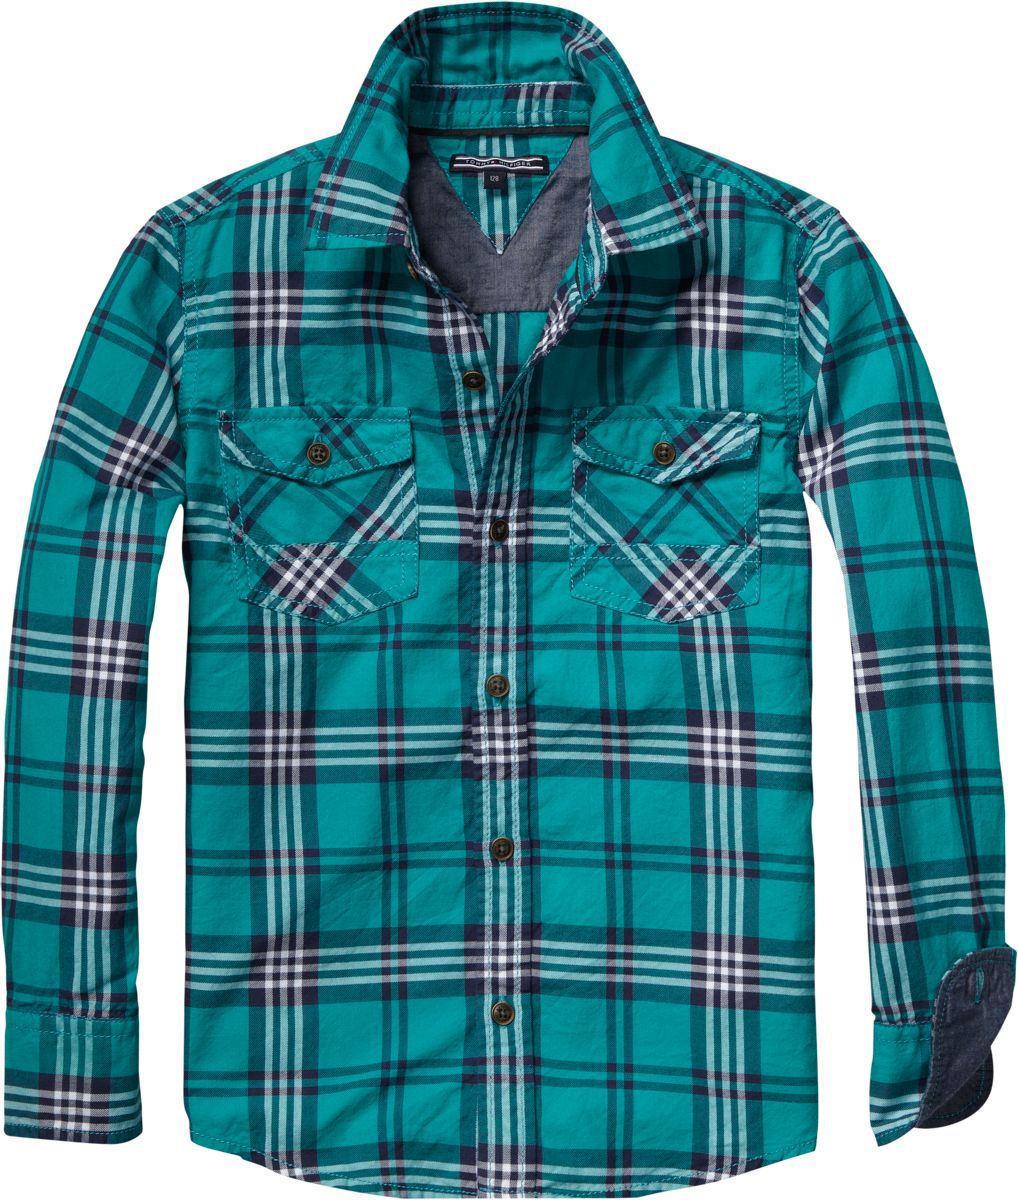 Baby boys harwich check shirt